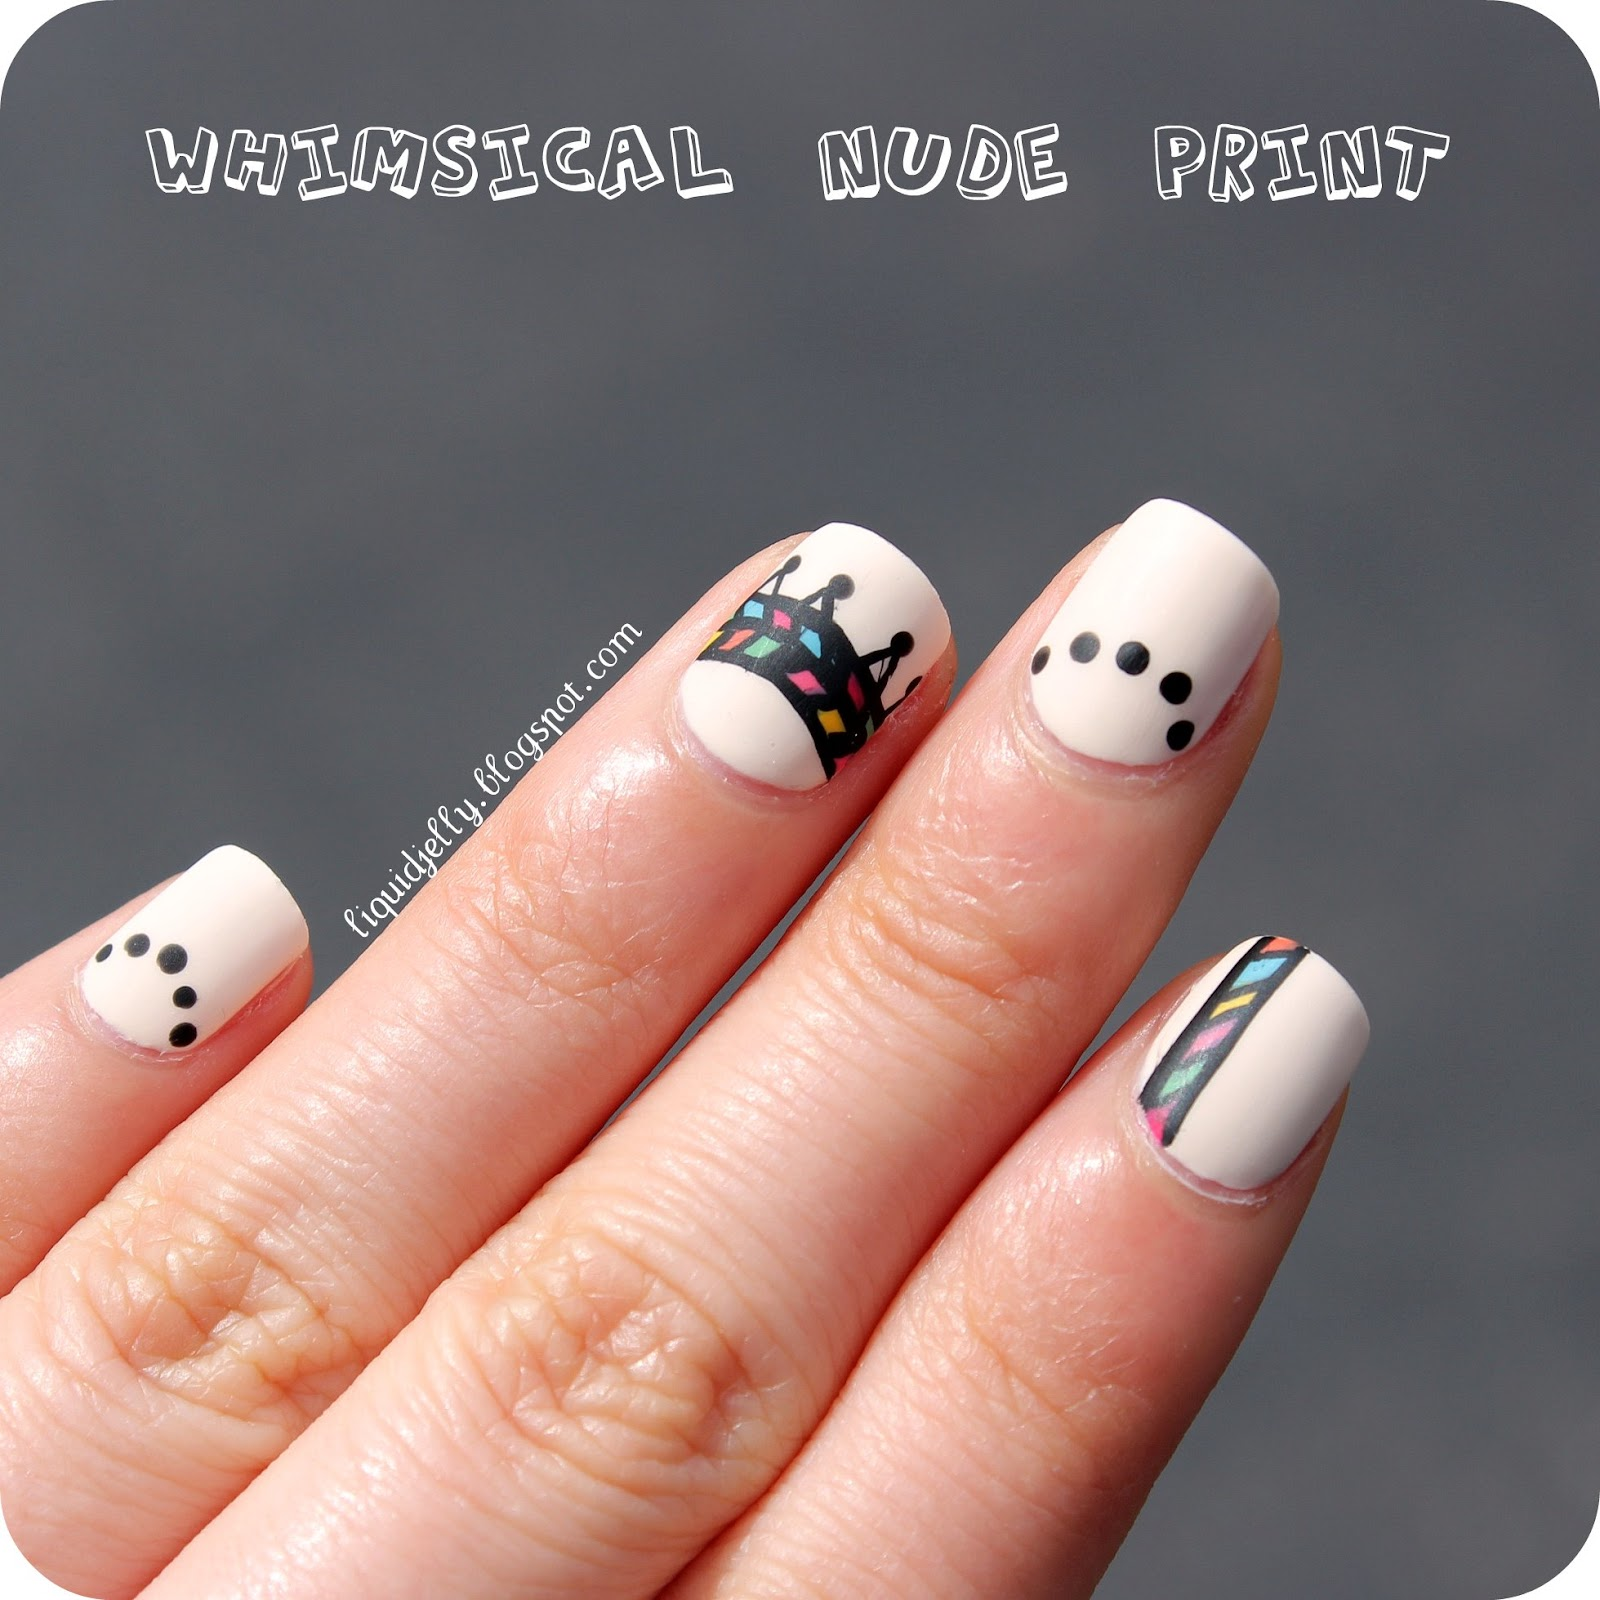 Liquid Jelly: Whimsical Nude Print Nail Art